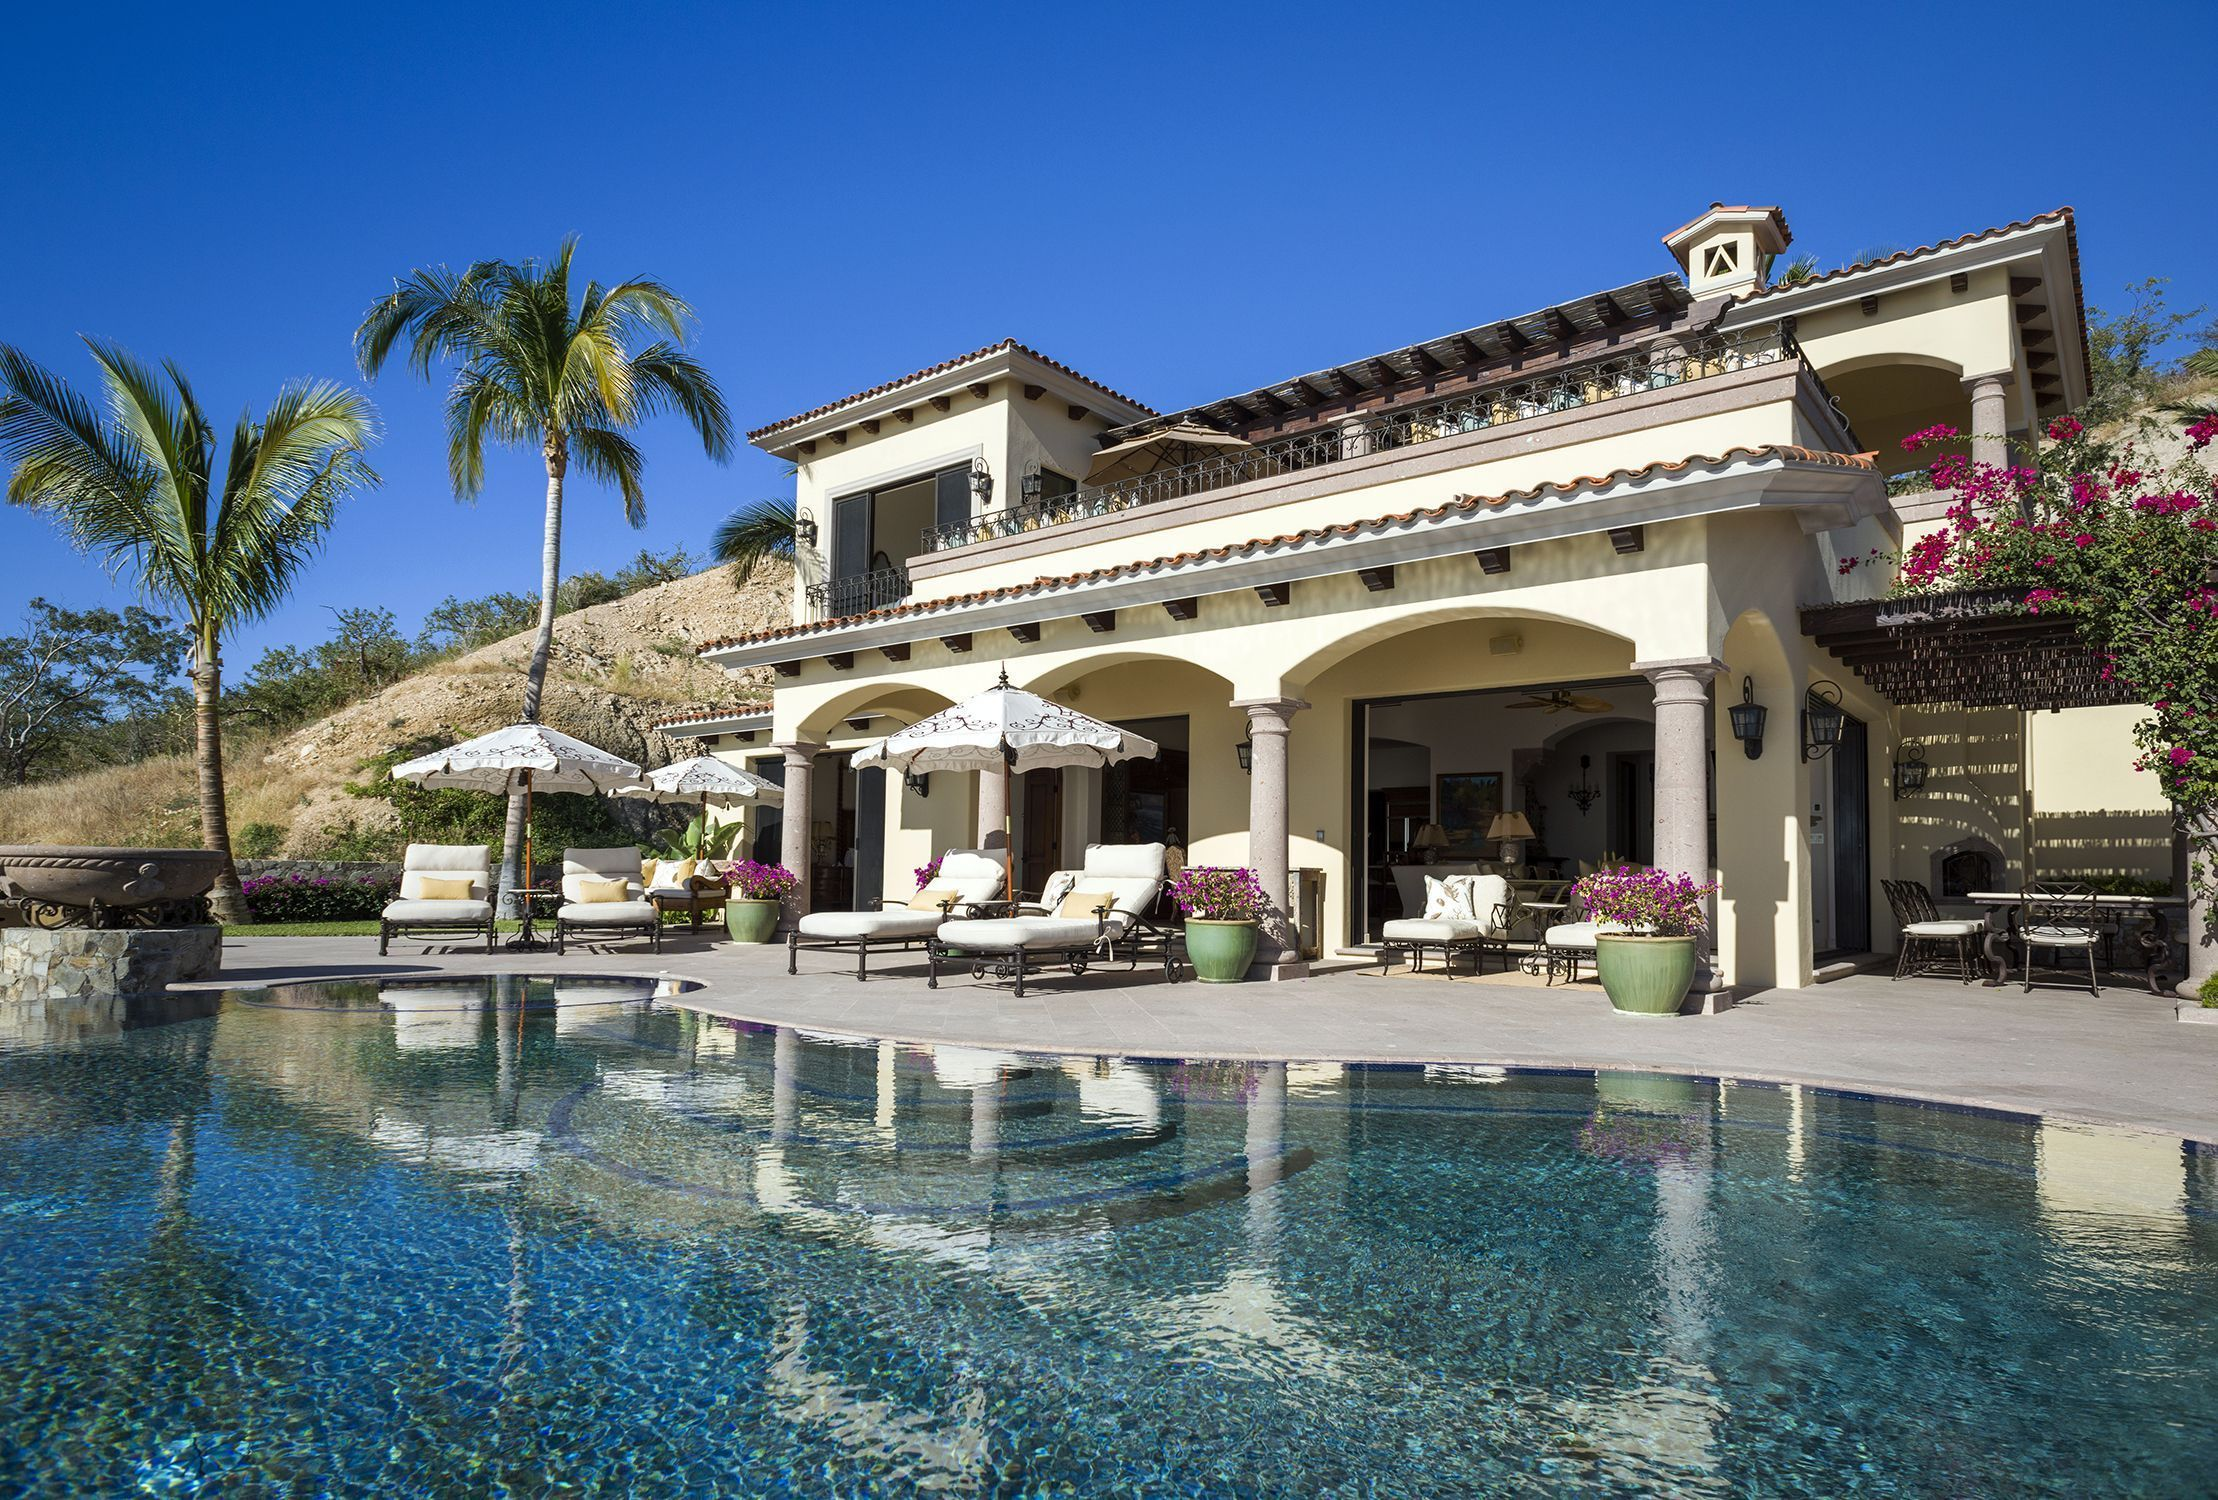 Lifestyle In Cabo Michael Baldwin Properties Sold Villa 710 Villas Del Mar Palmilla Los Cabos Mexico Inquire Info Li House Styles Mansions Property